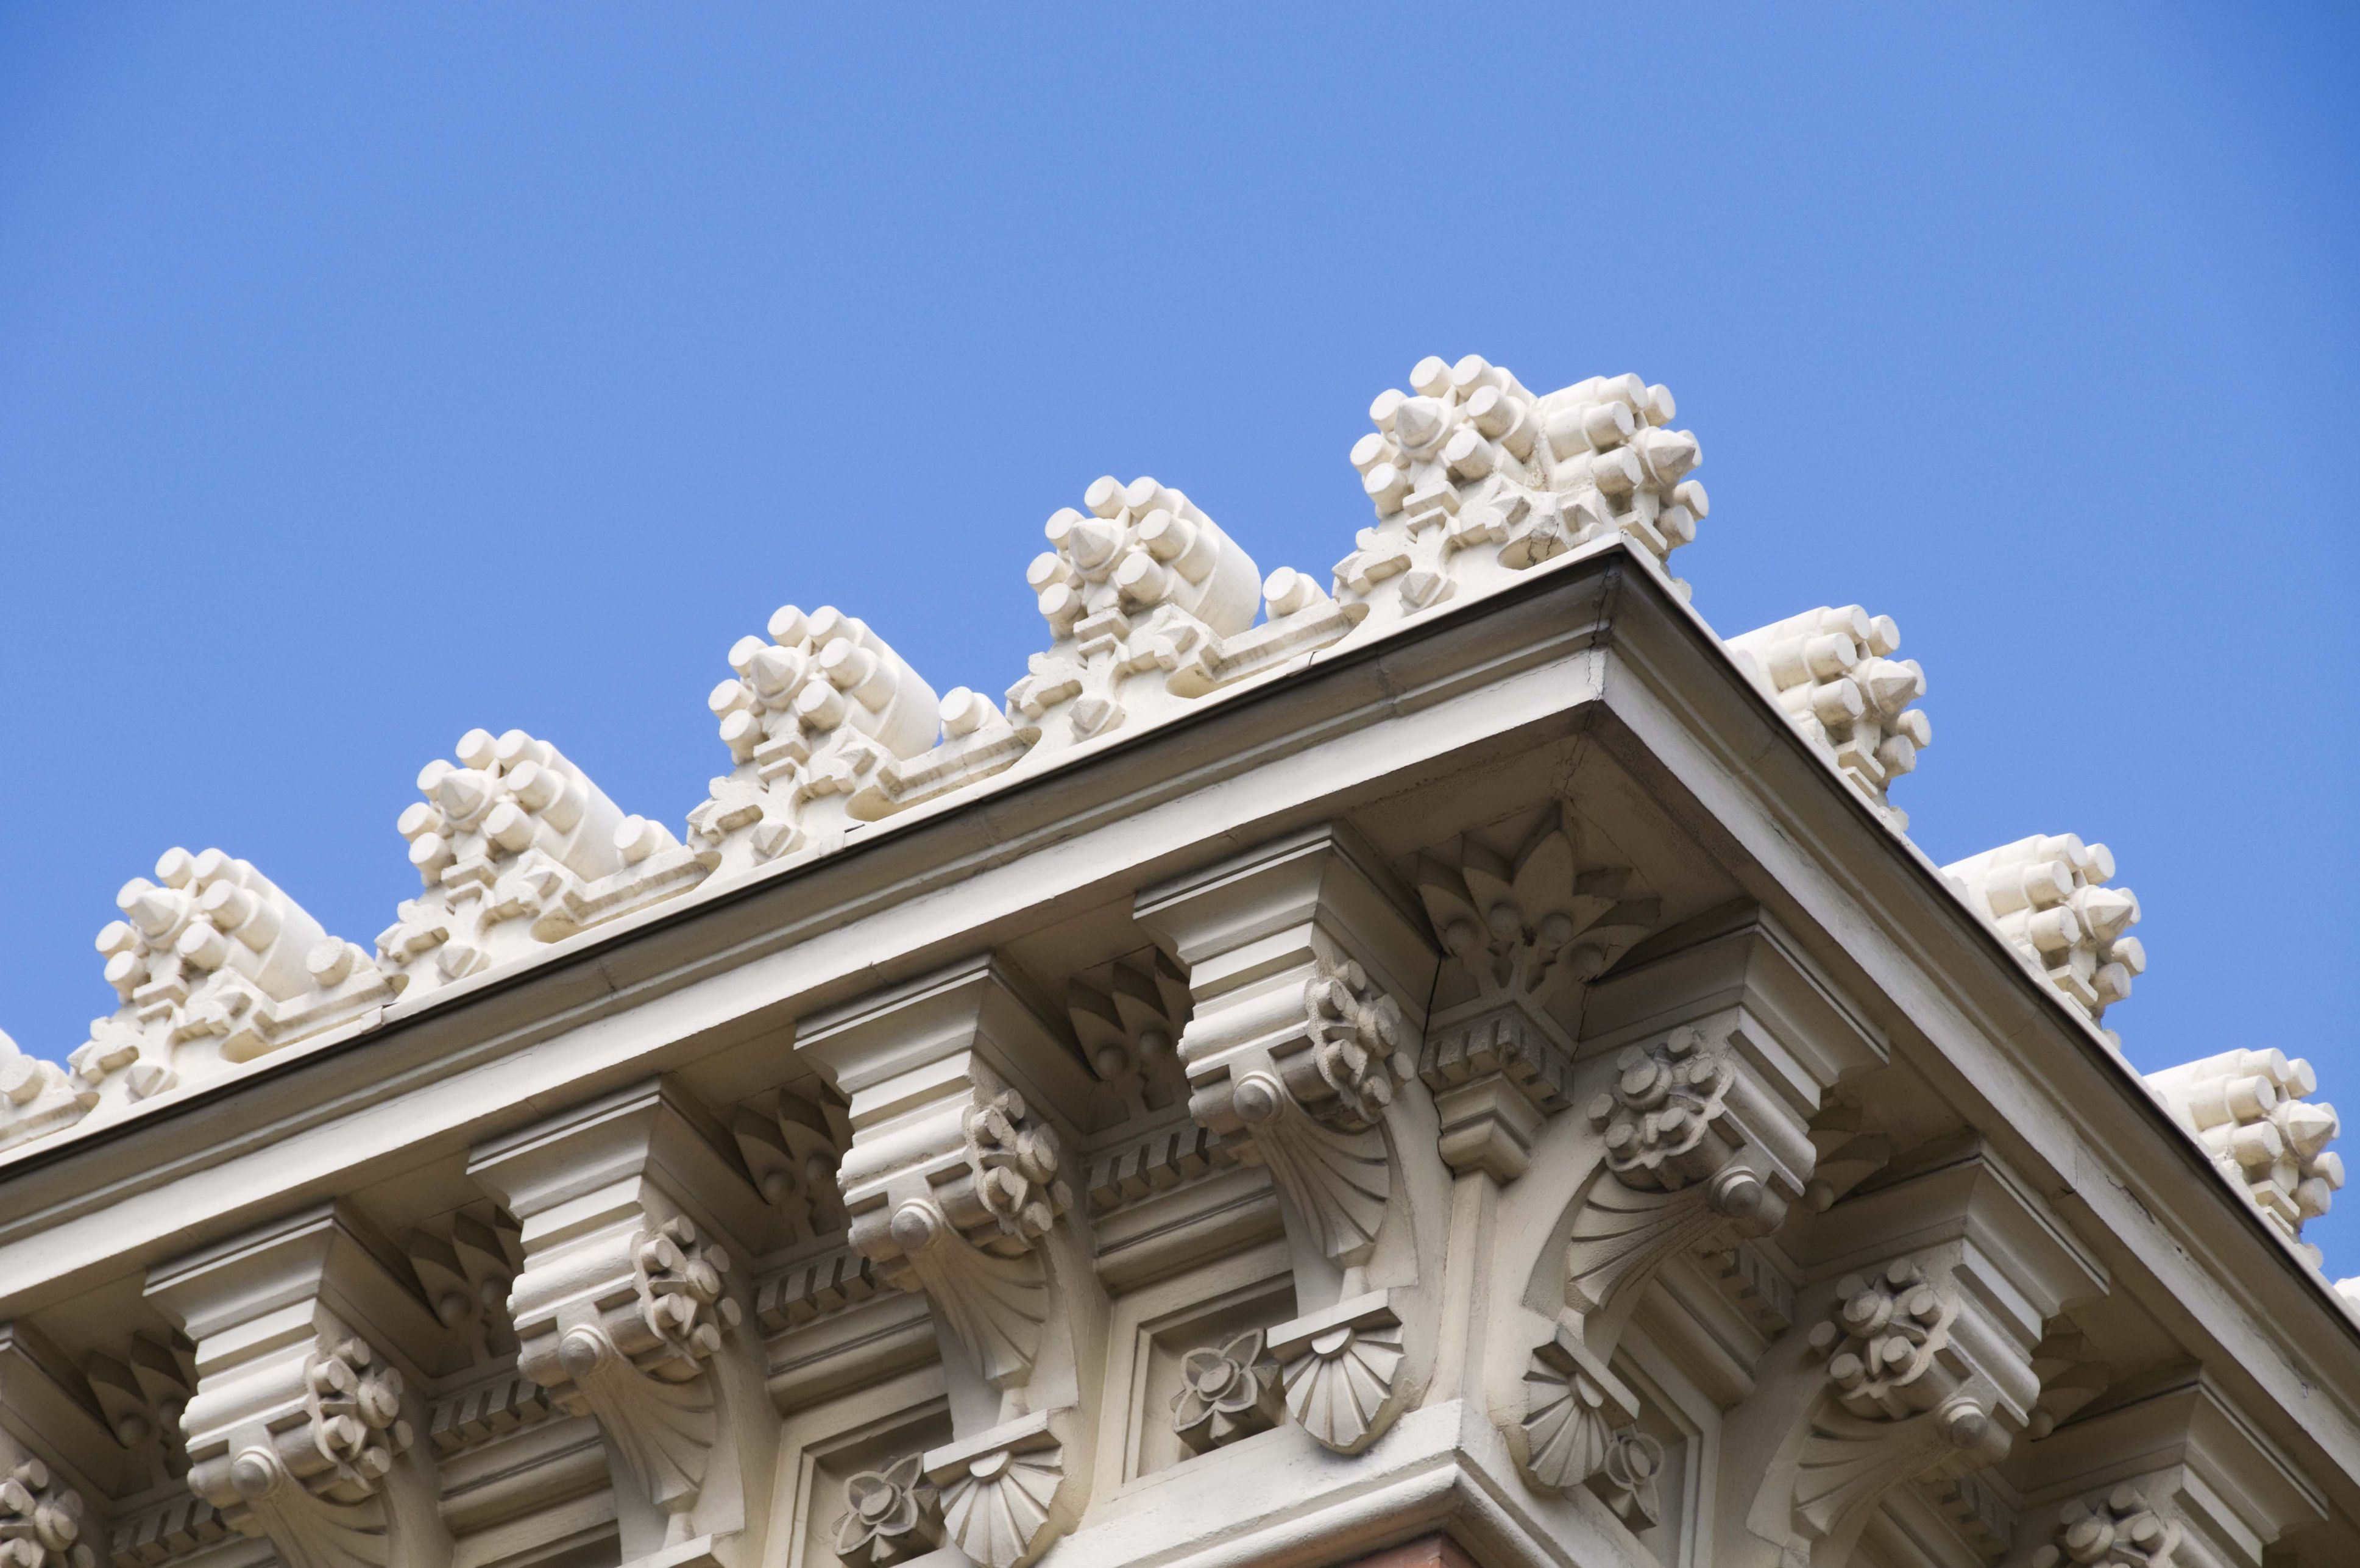 Architecture & Construction Definition What Is A Cornice Check The Architecture Glossary